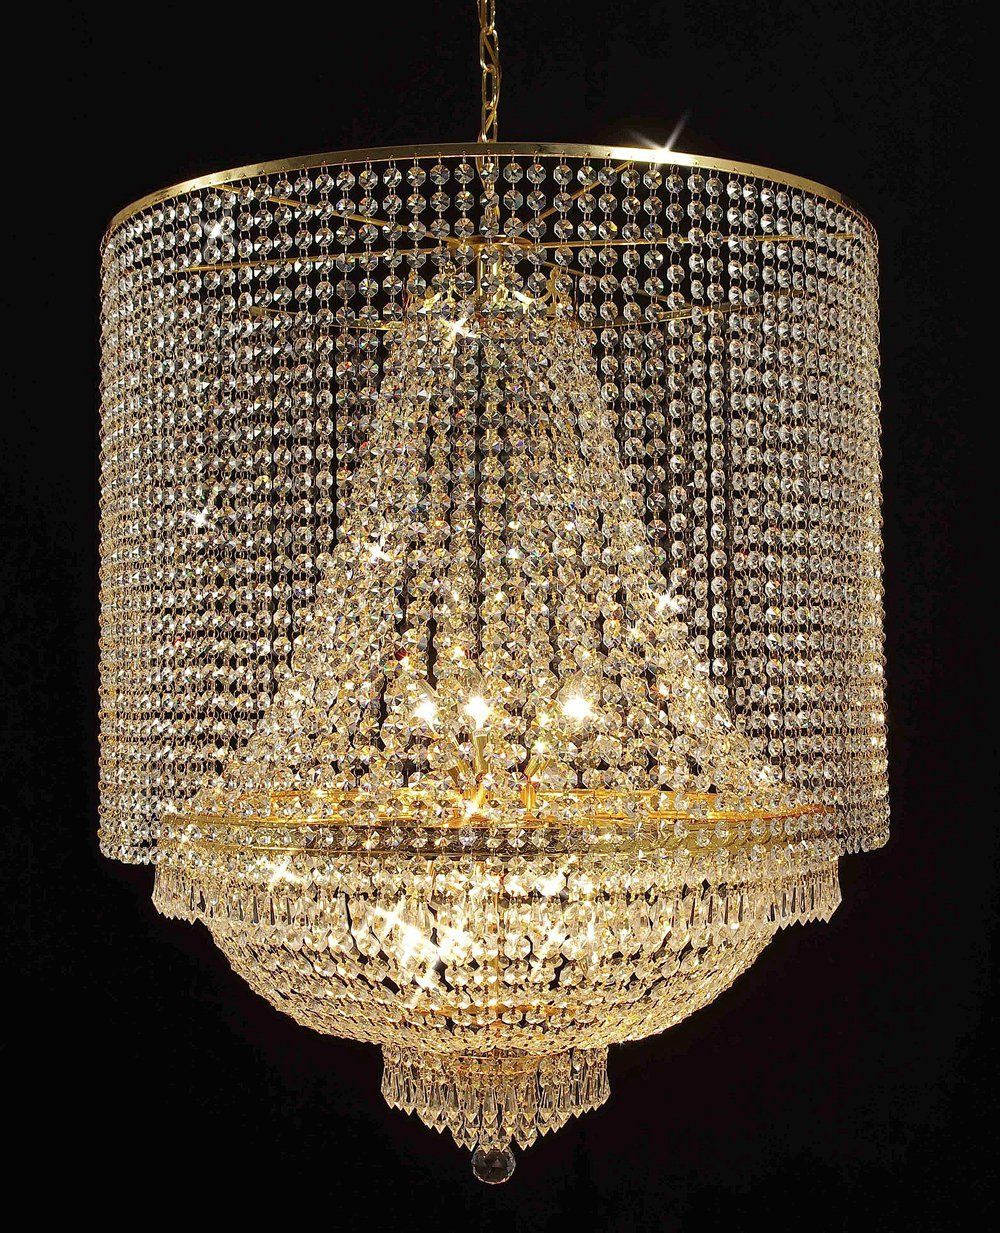 Empire Crystal Chandelier Chandeliers Empress Tm Lighting With Shade